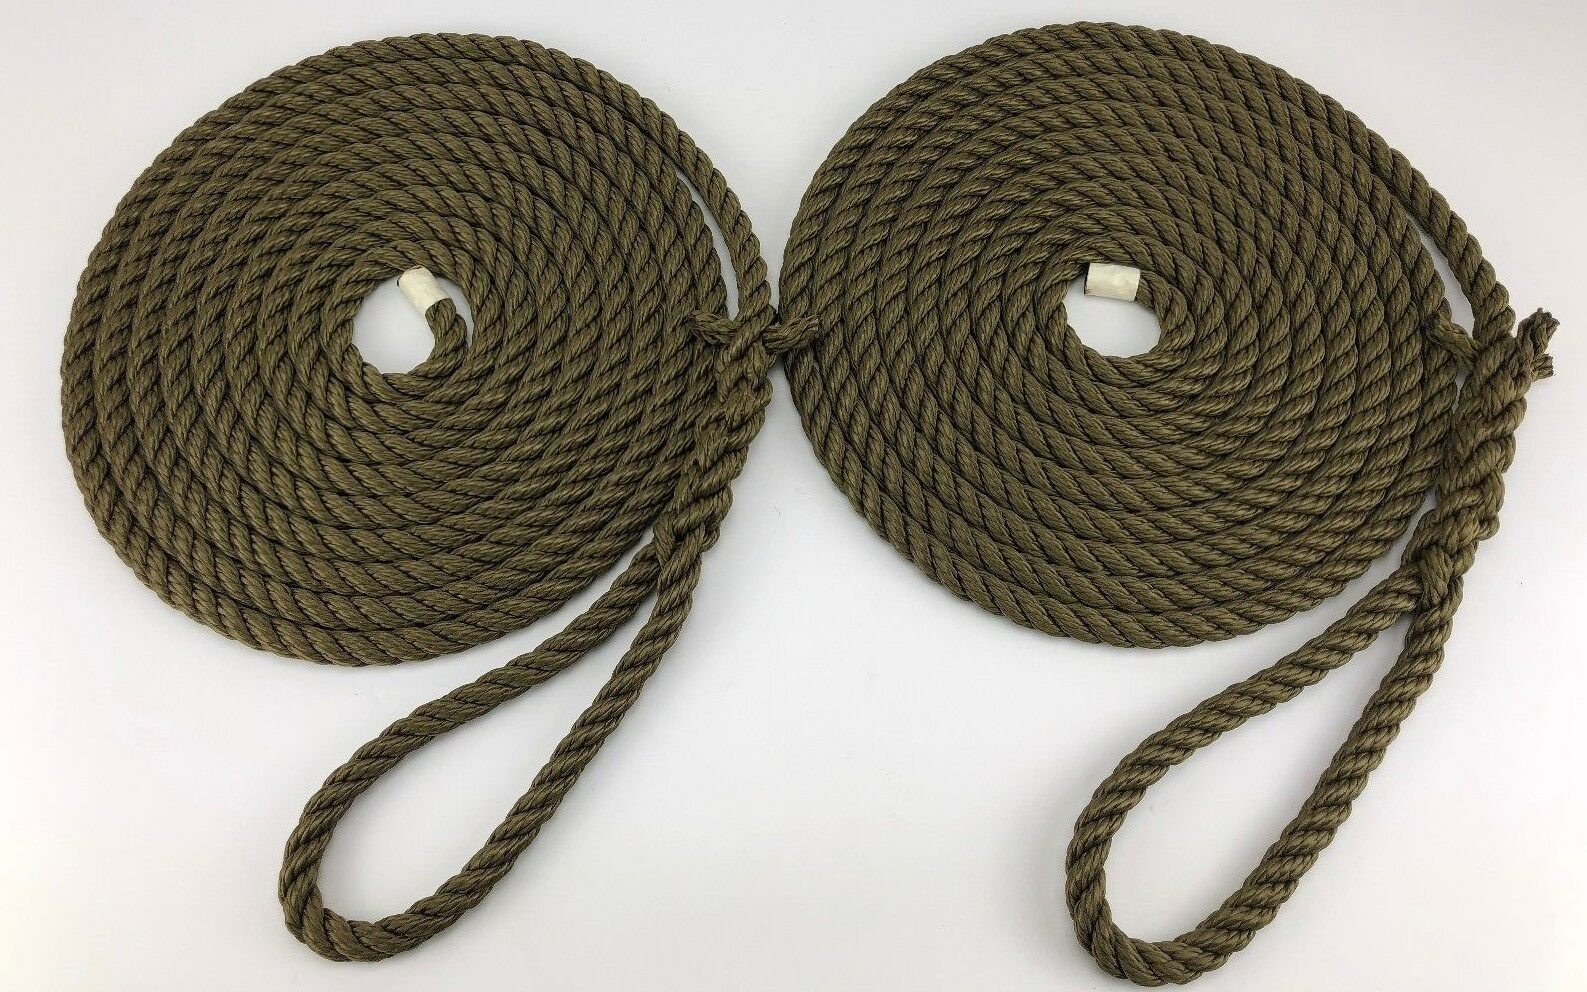 2 x 16 Metres of 14mm Olive Green Mooring Ropes. Warps, Boat Lines, Yachts,Canal